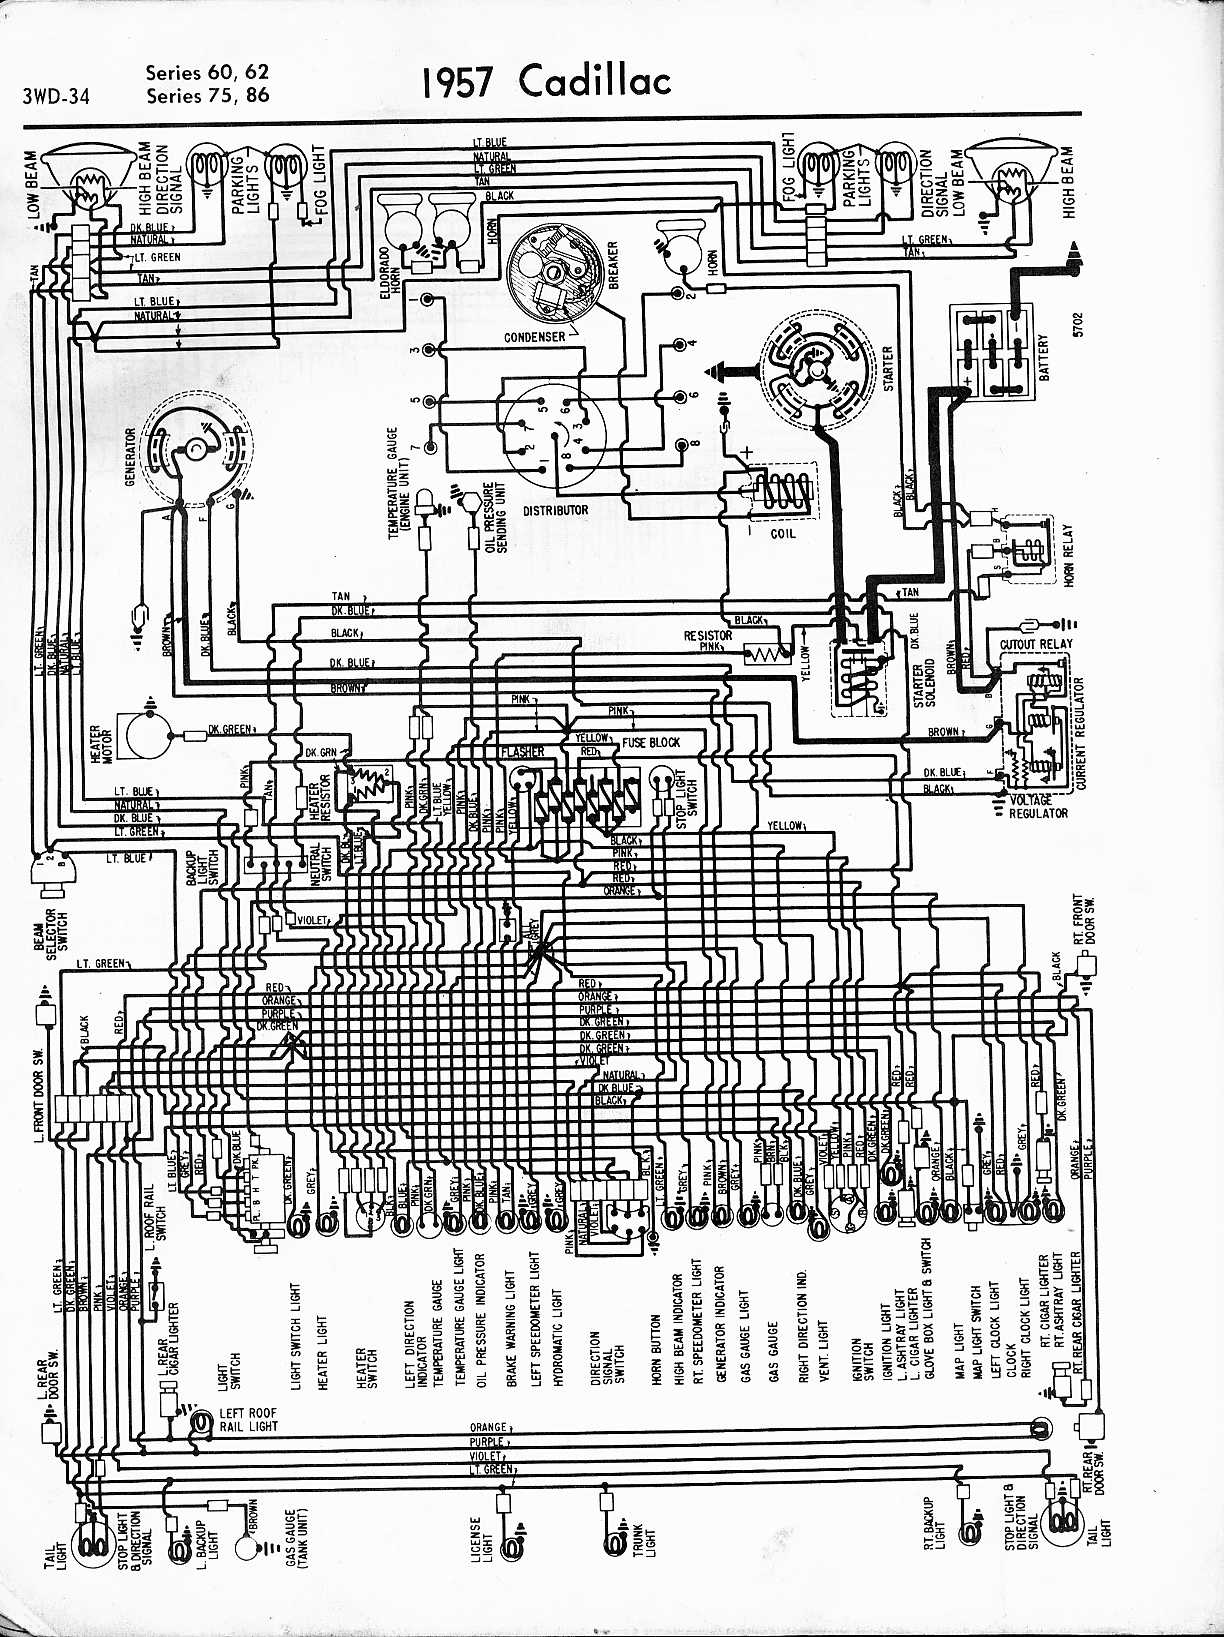 1956 Cadillac Wiring Diagram Reinvent Your 1950 Mercury Headlight Switch Diagrams 1957 1965 Rh Oldcarmanualproject Com 1970